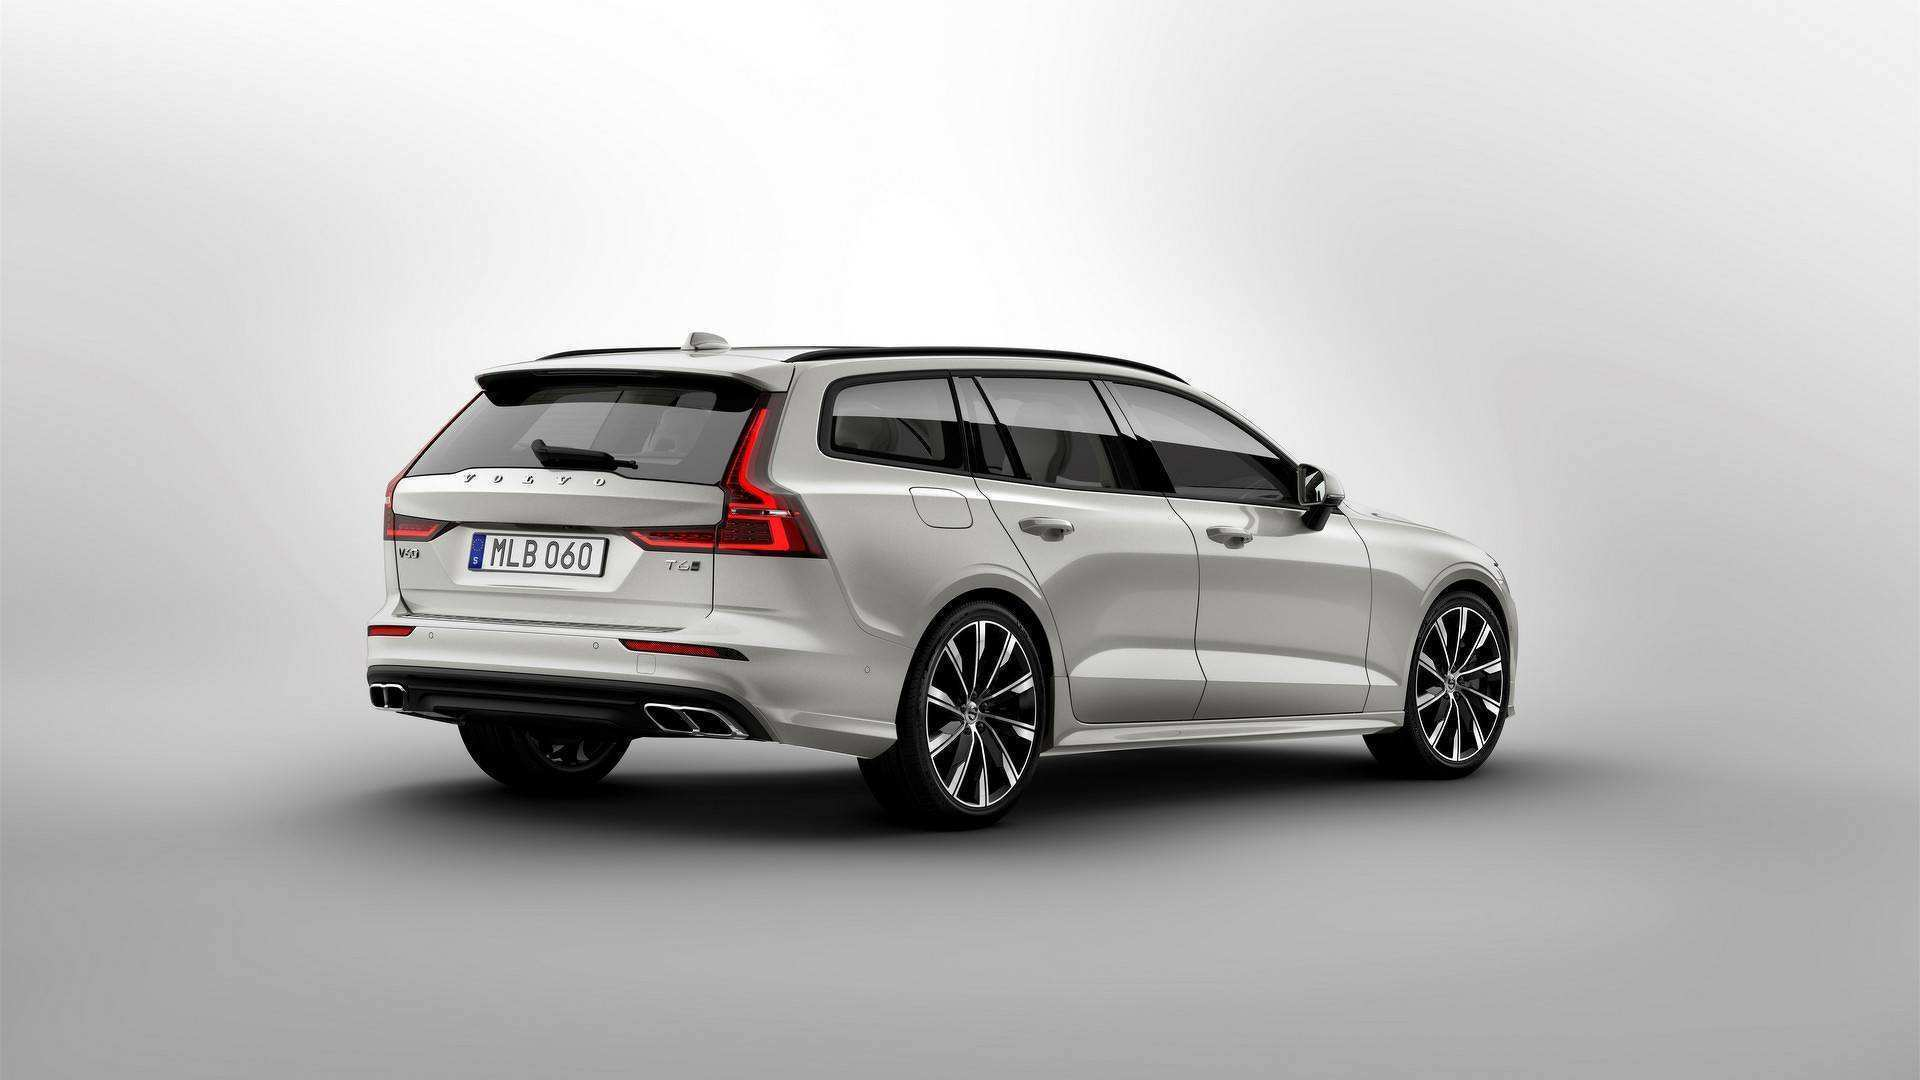 77 A Volvo V60 2019 Dimensions Wallpaper